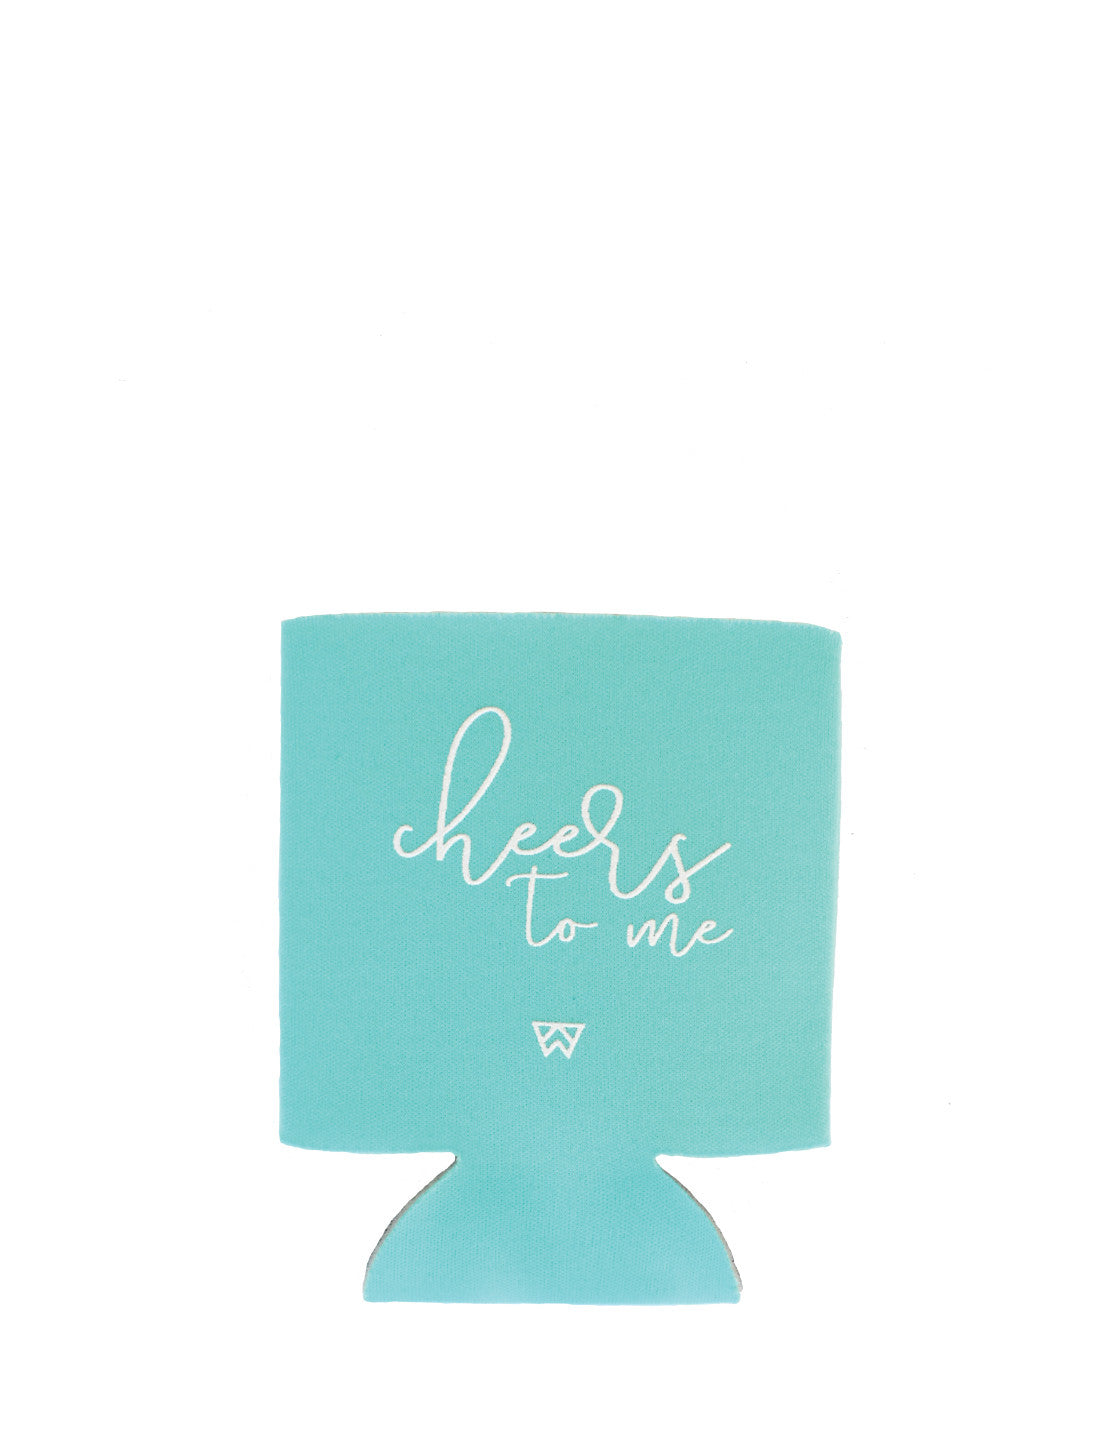 Boozie Koozie in Turquoise - Lifestyle